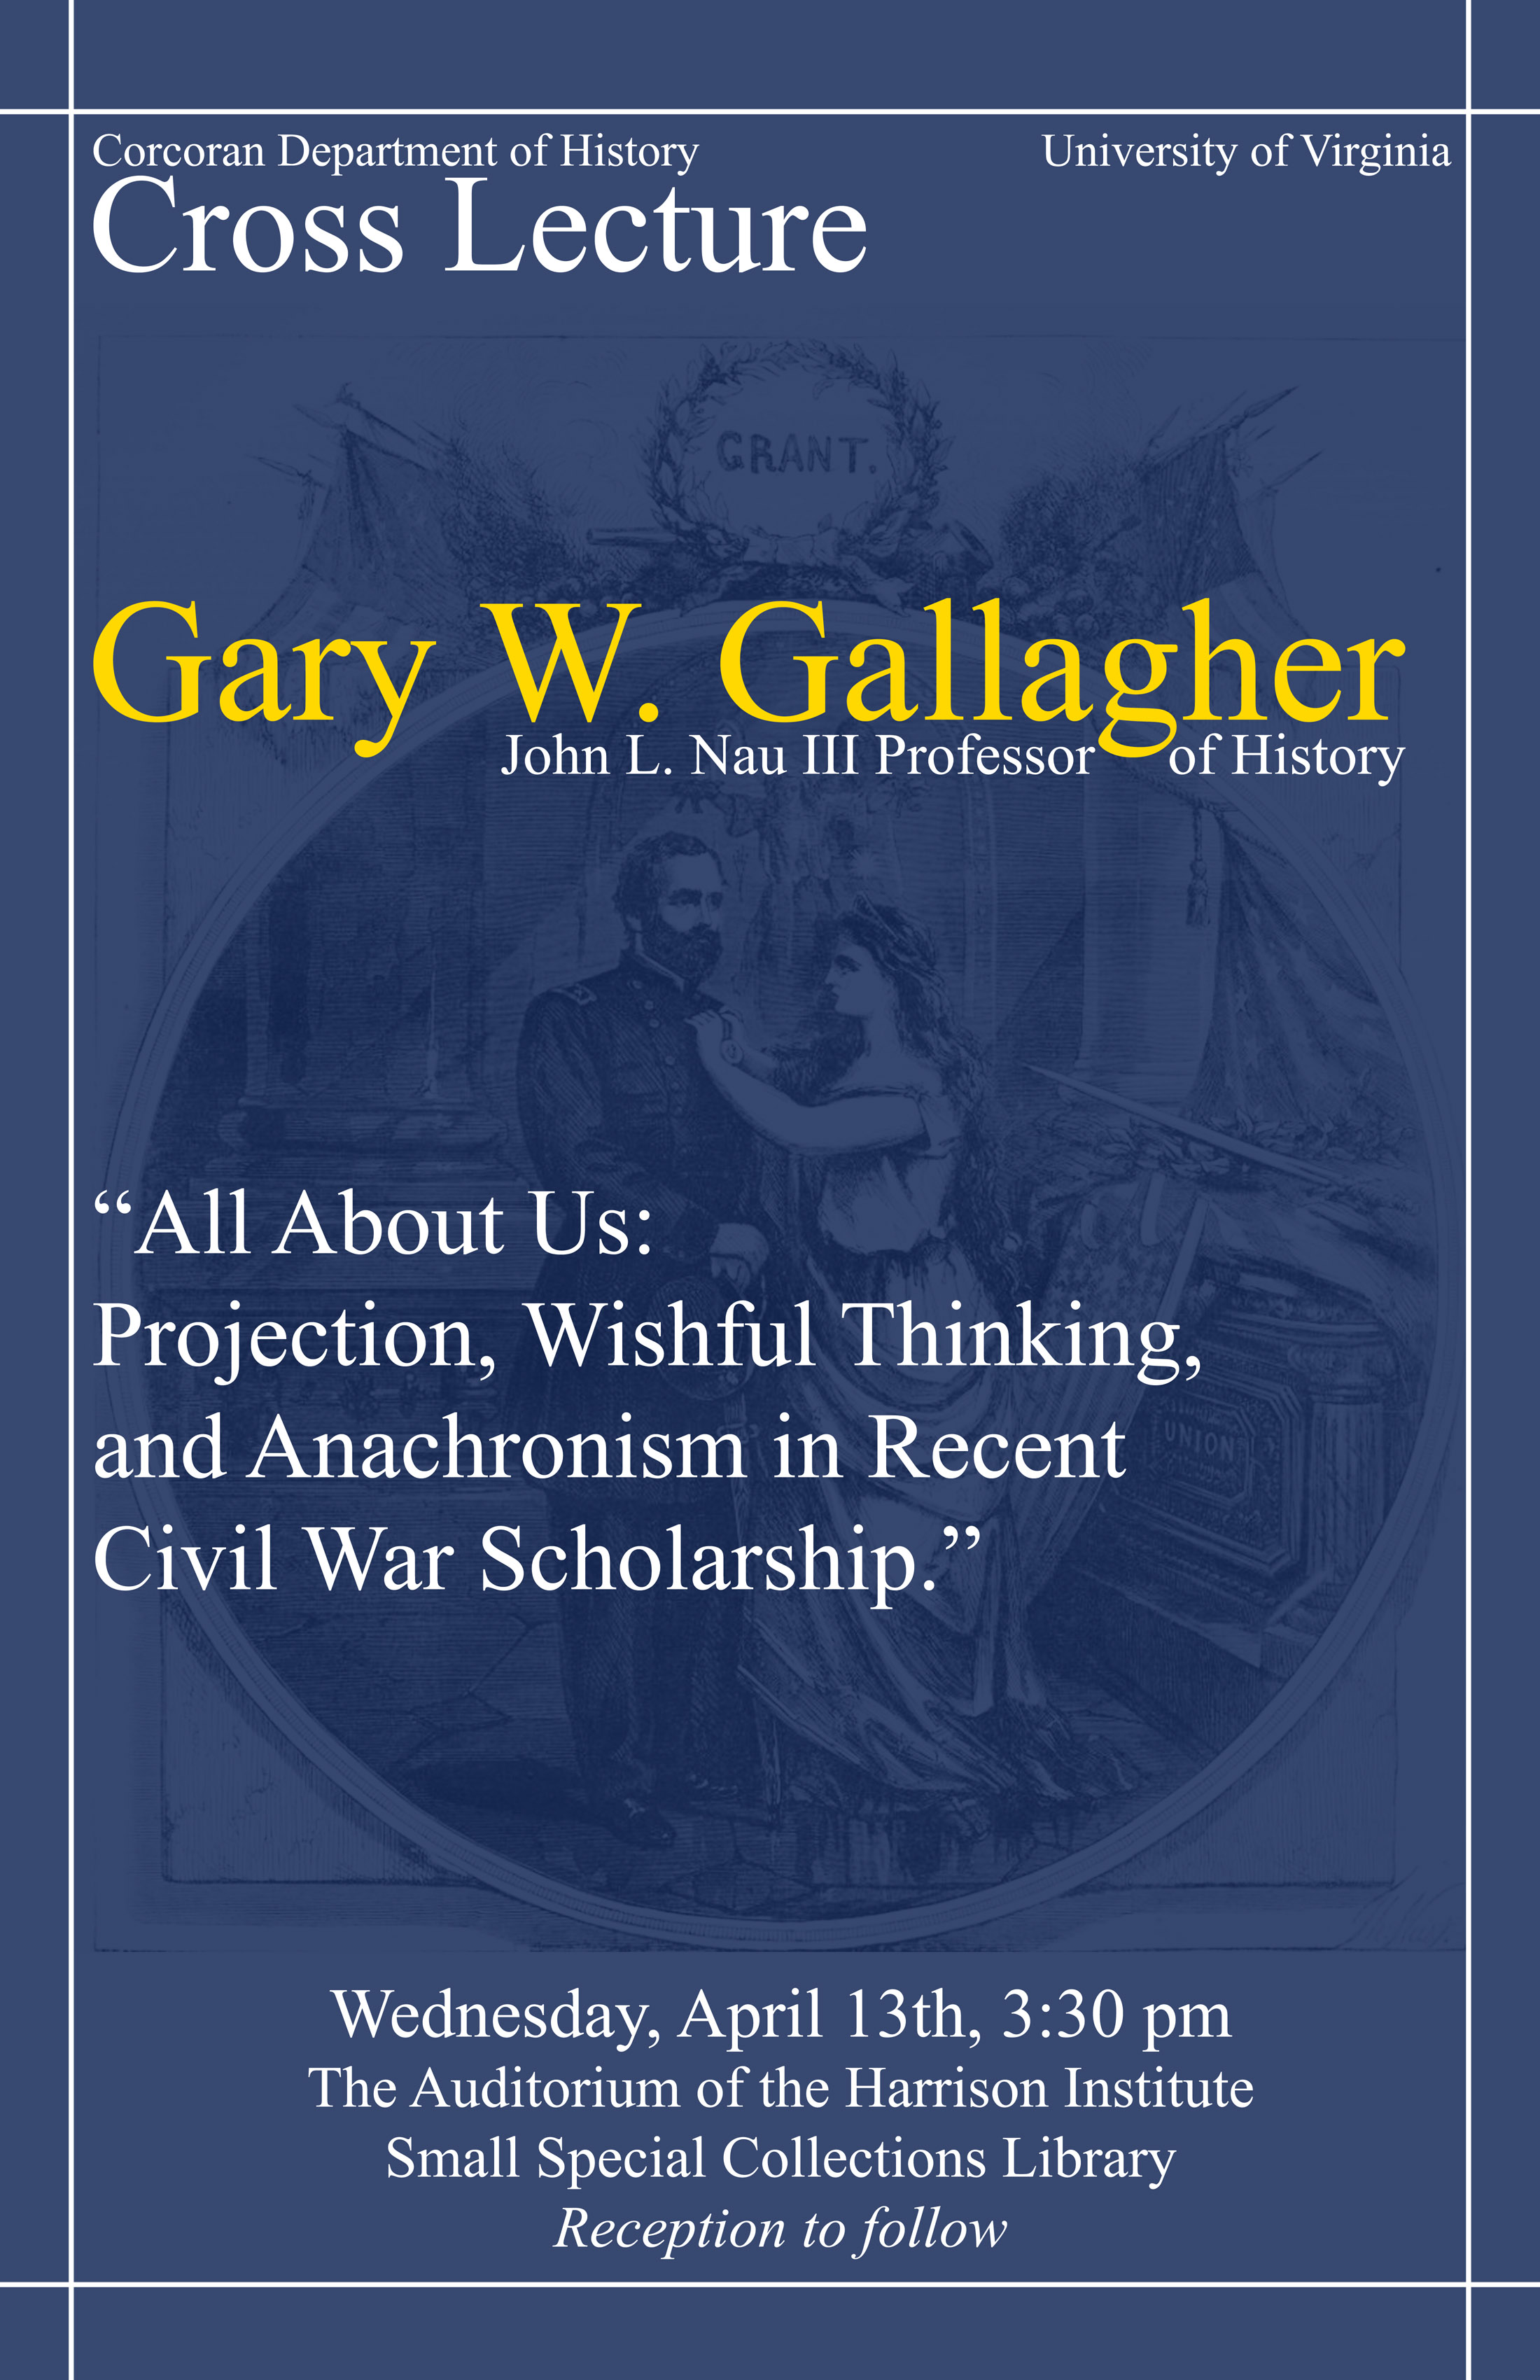 Cross Lecture - Gary Gallagher